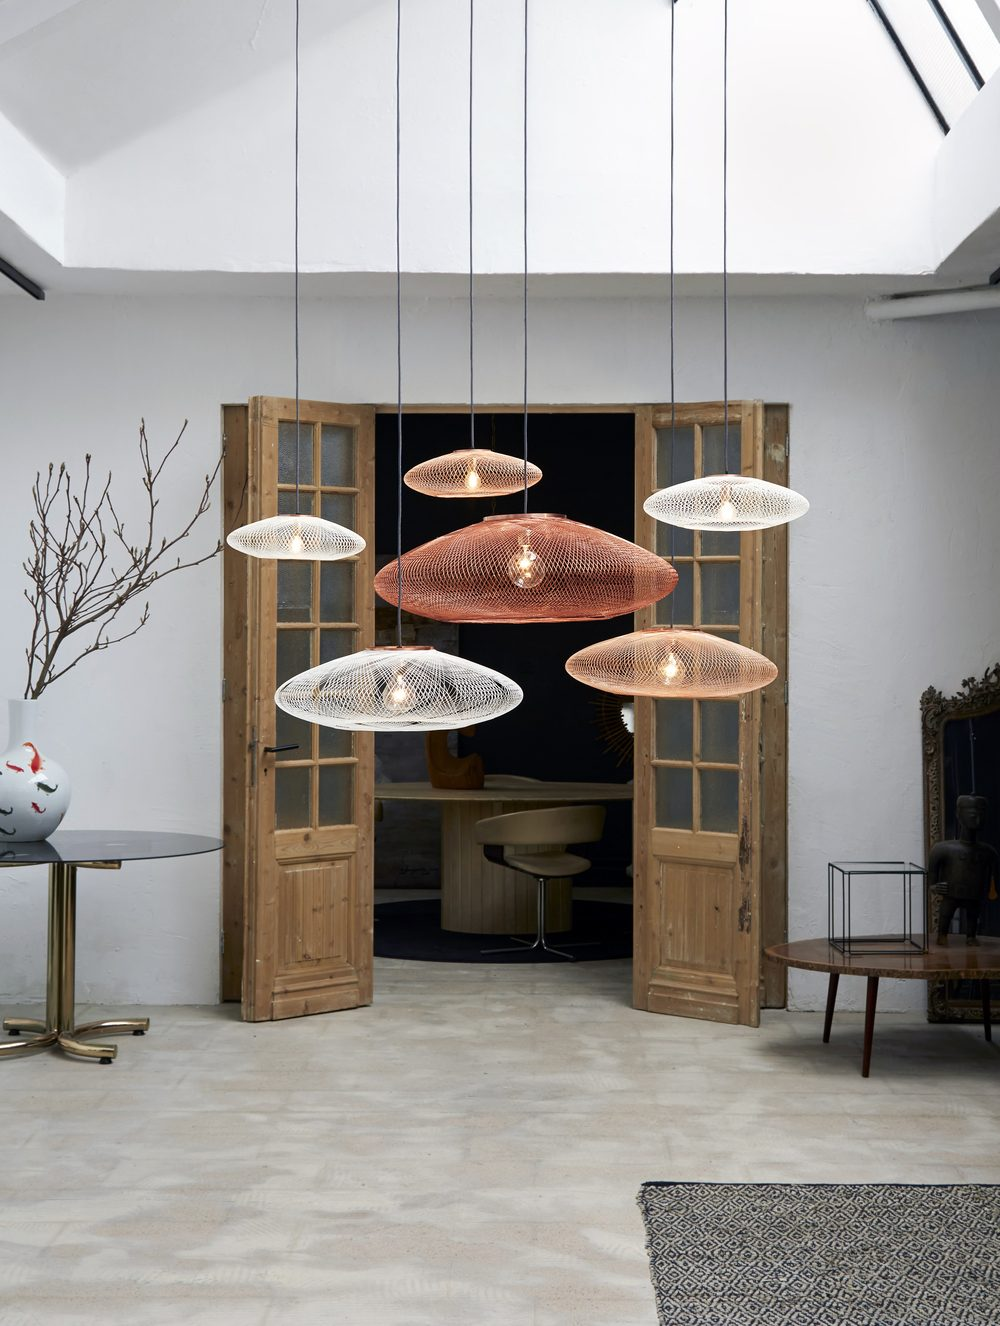 Atelier Robotiq UFO Hanglamp Small Medium Large Gimmii